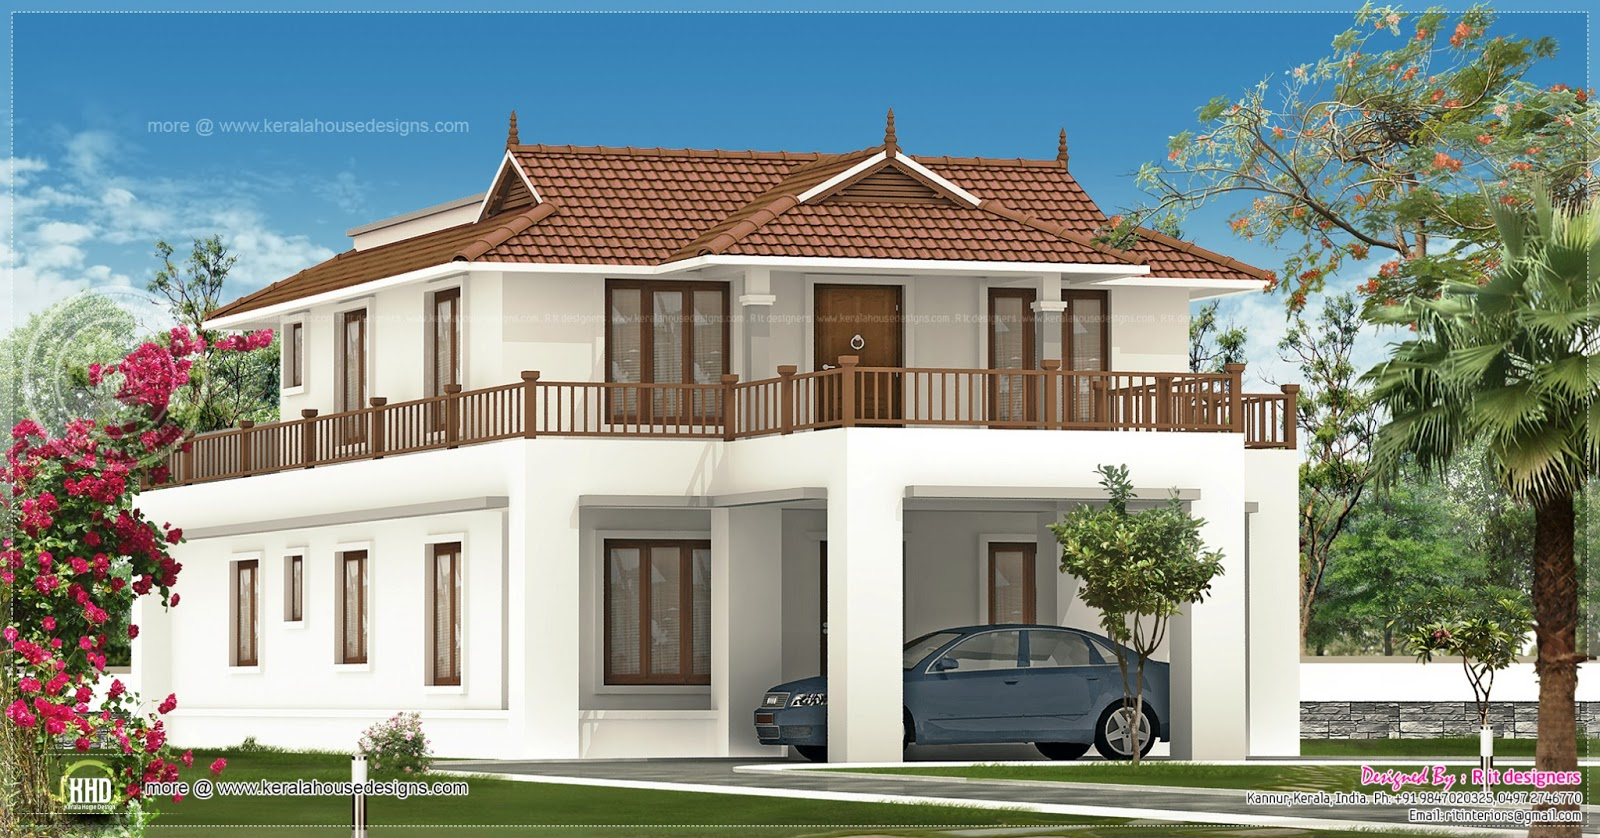 2820 square feet house exterior design kerala home for One level house exterior design